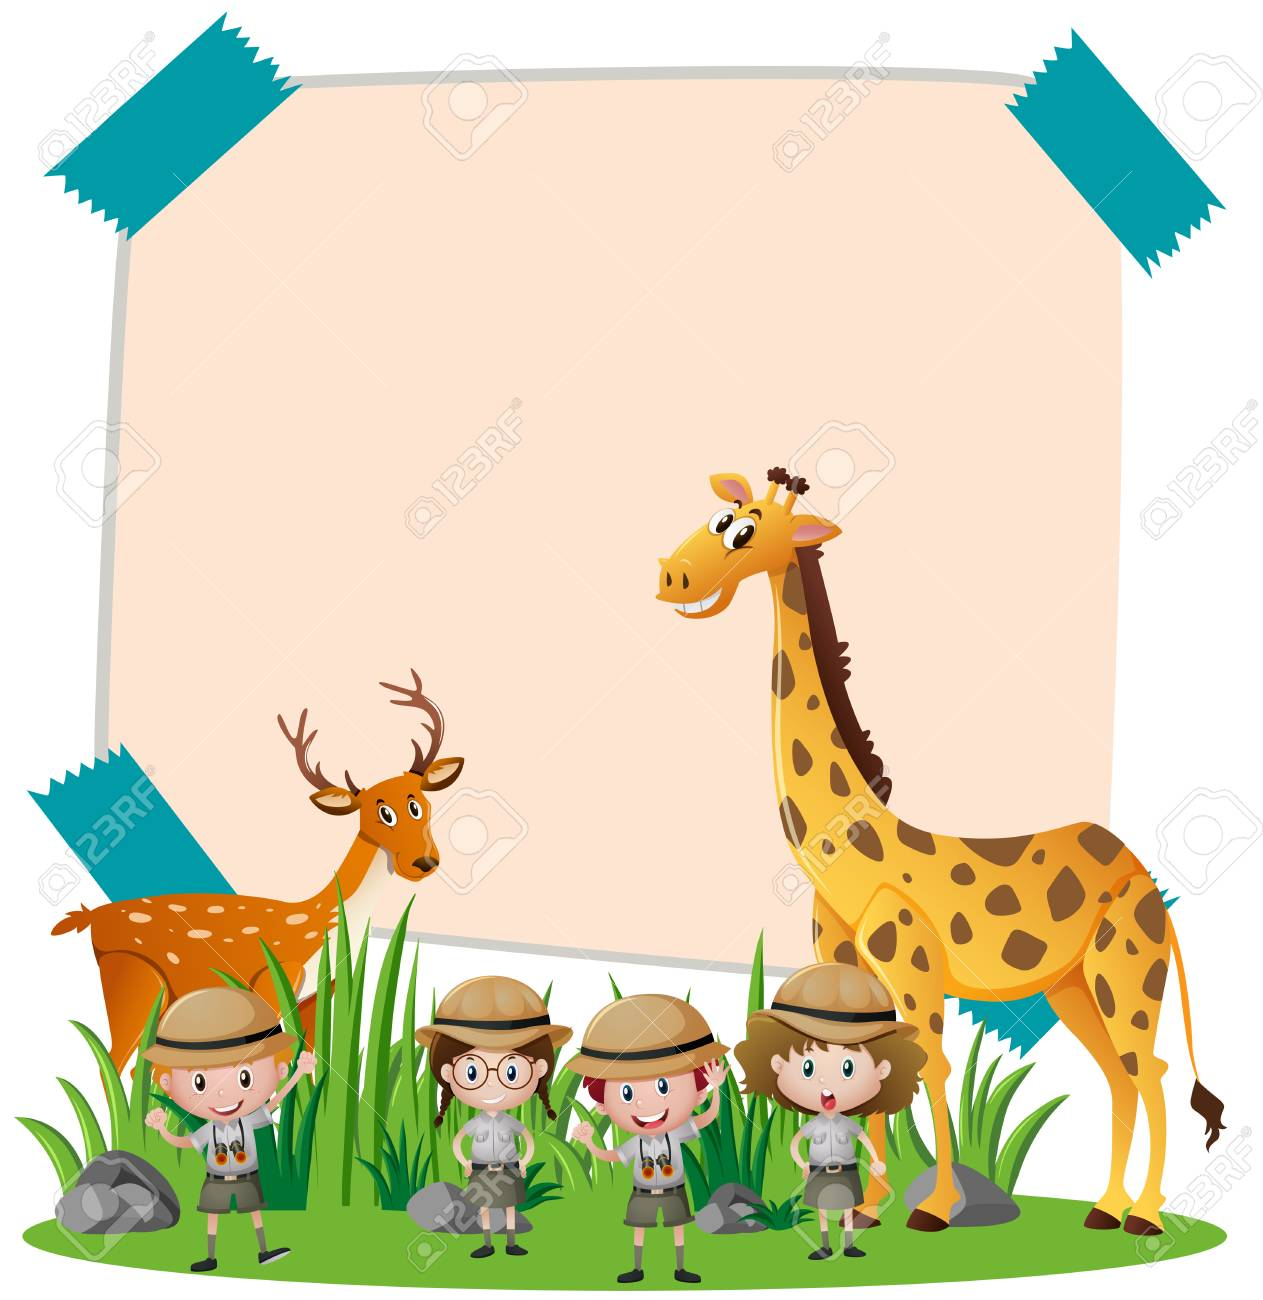 Paper Template With Wild Animals And Kids Illustration Royalty Free